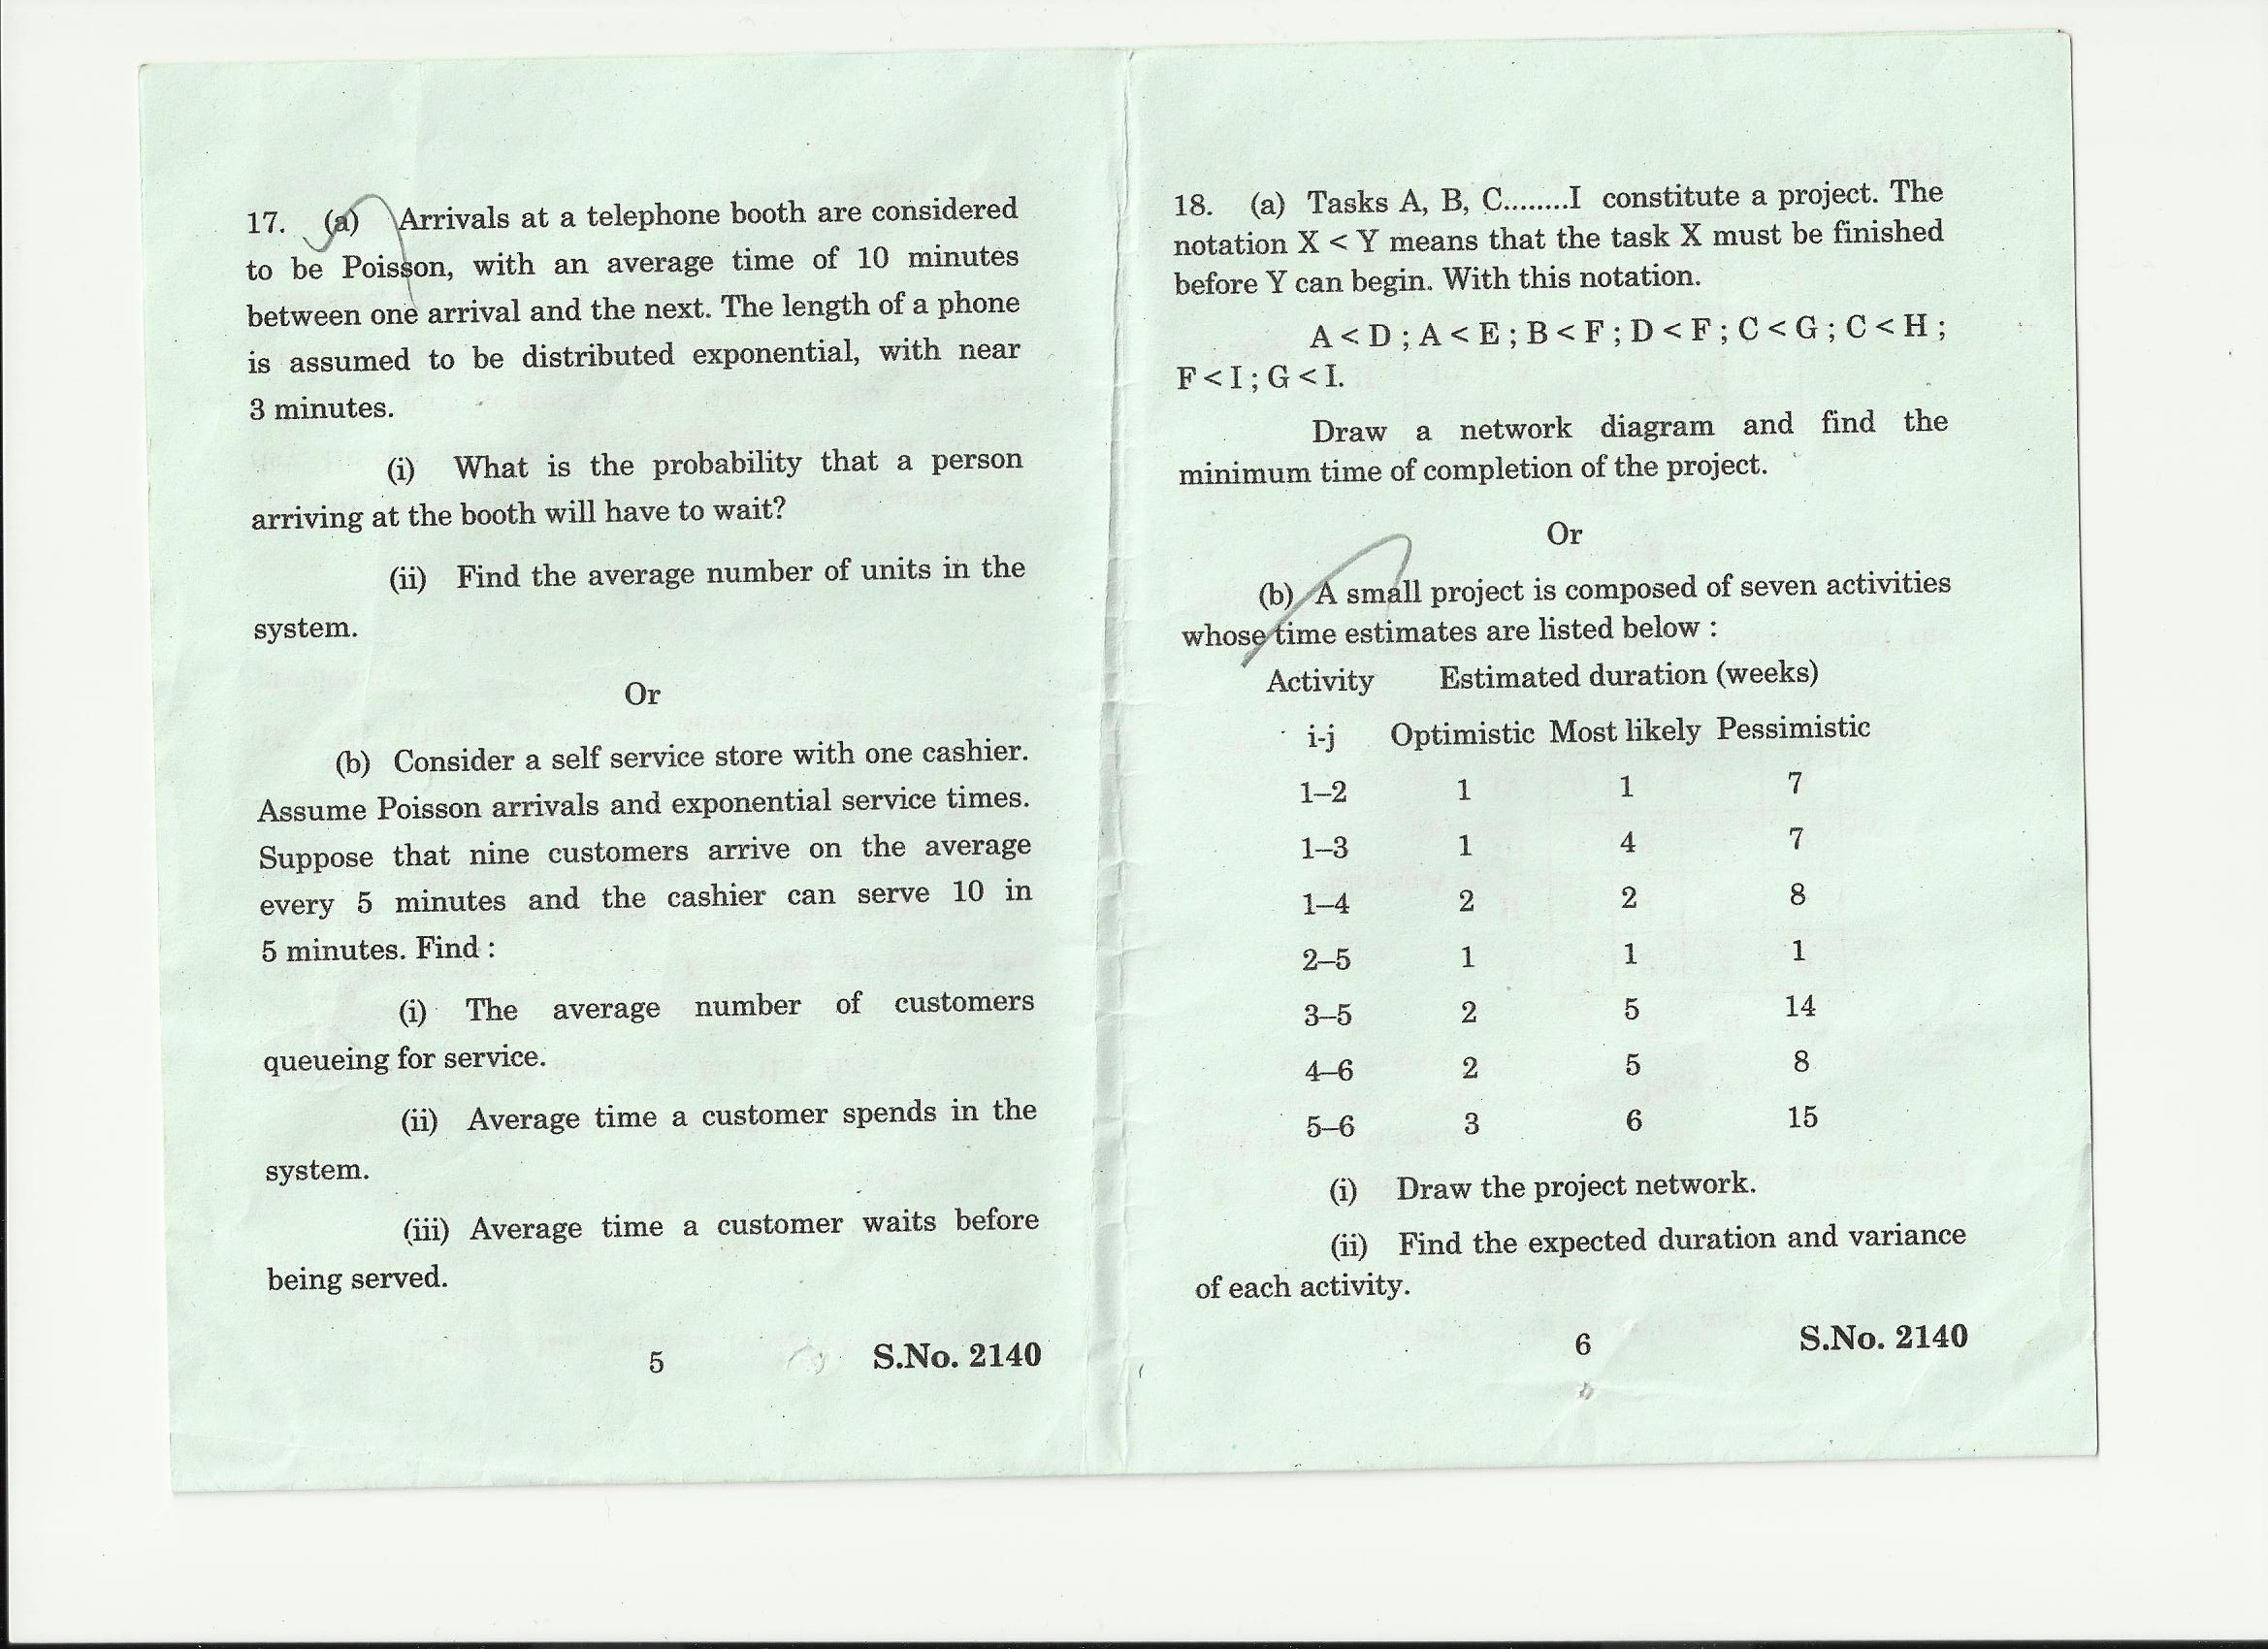 018 Questions For Research Paper Image Formidable Examples Abortion Topic Full